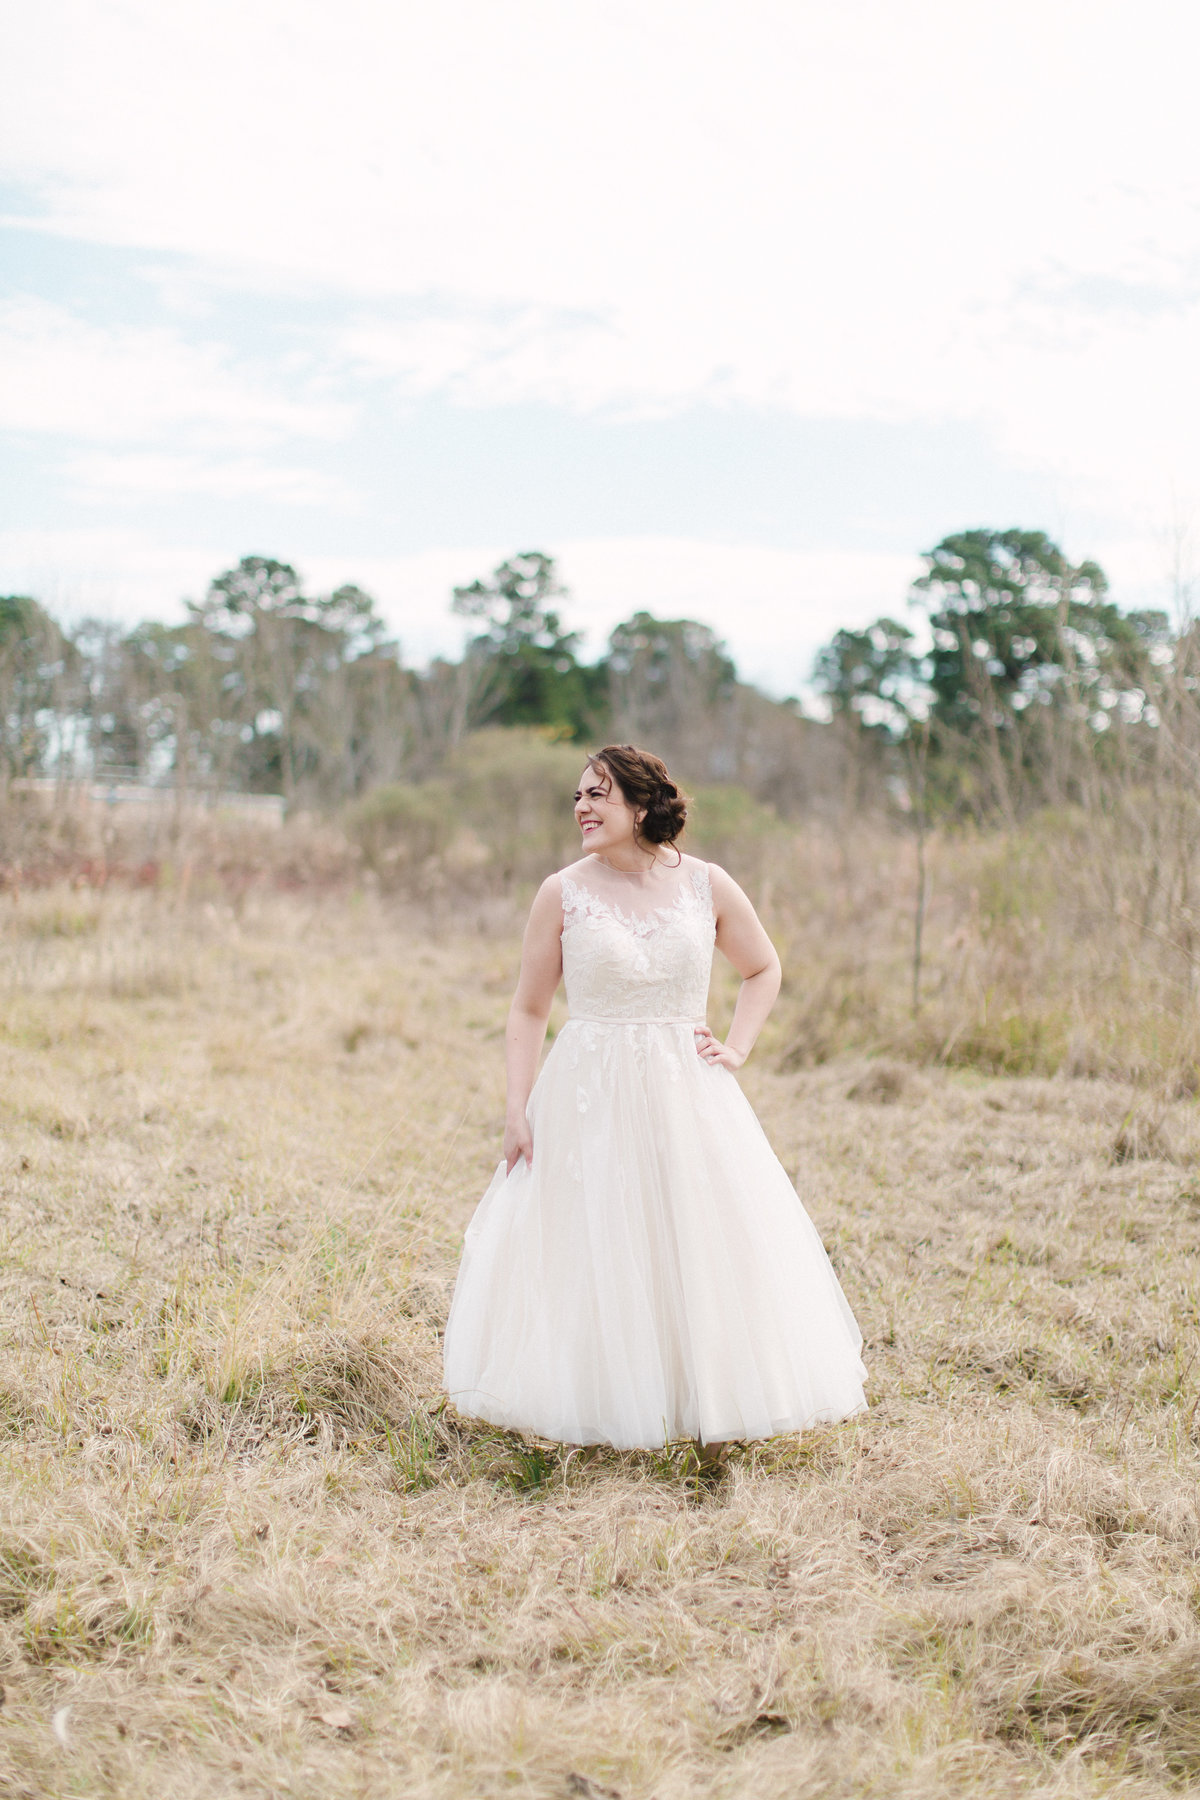 The-woodlands-bridal-session-alicia-yarrish-photography-21